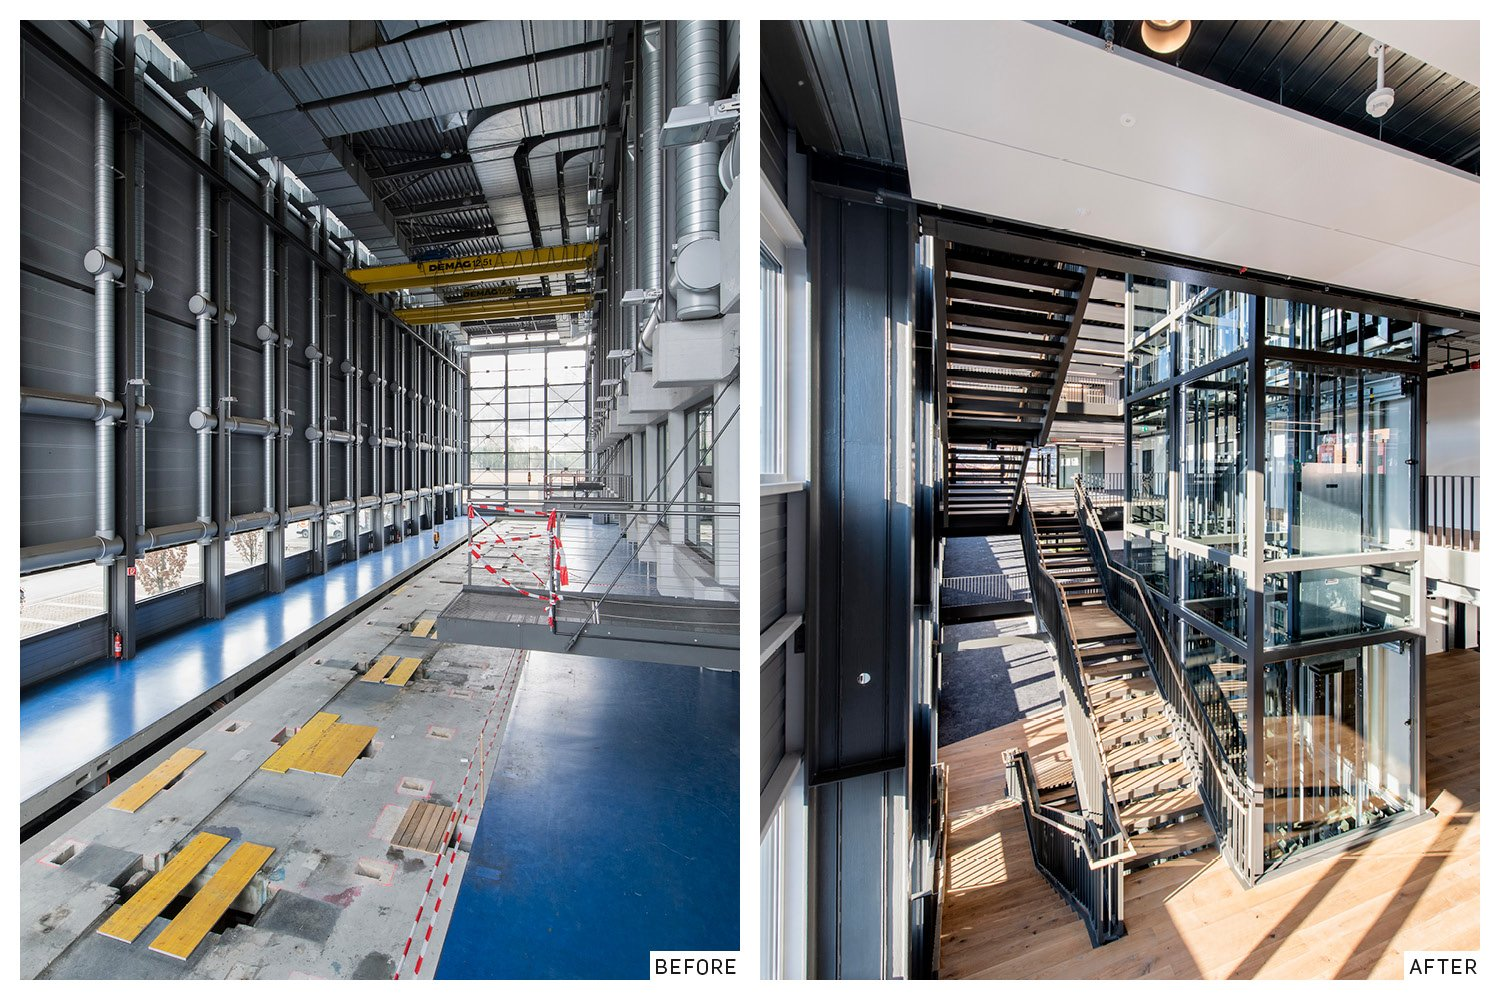 The main printing hall before and after the renovation. Evolution Design}